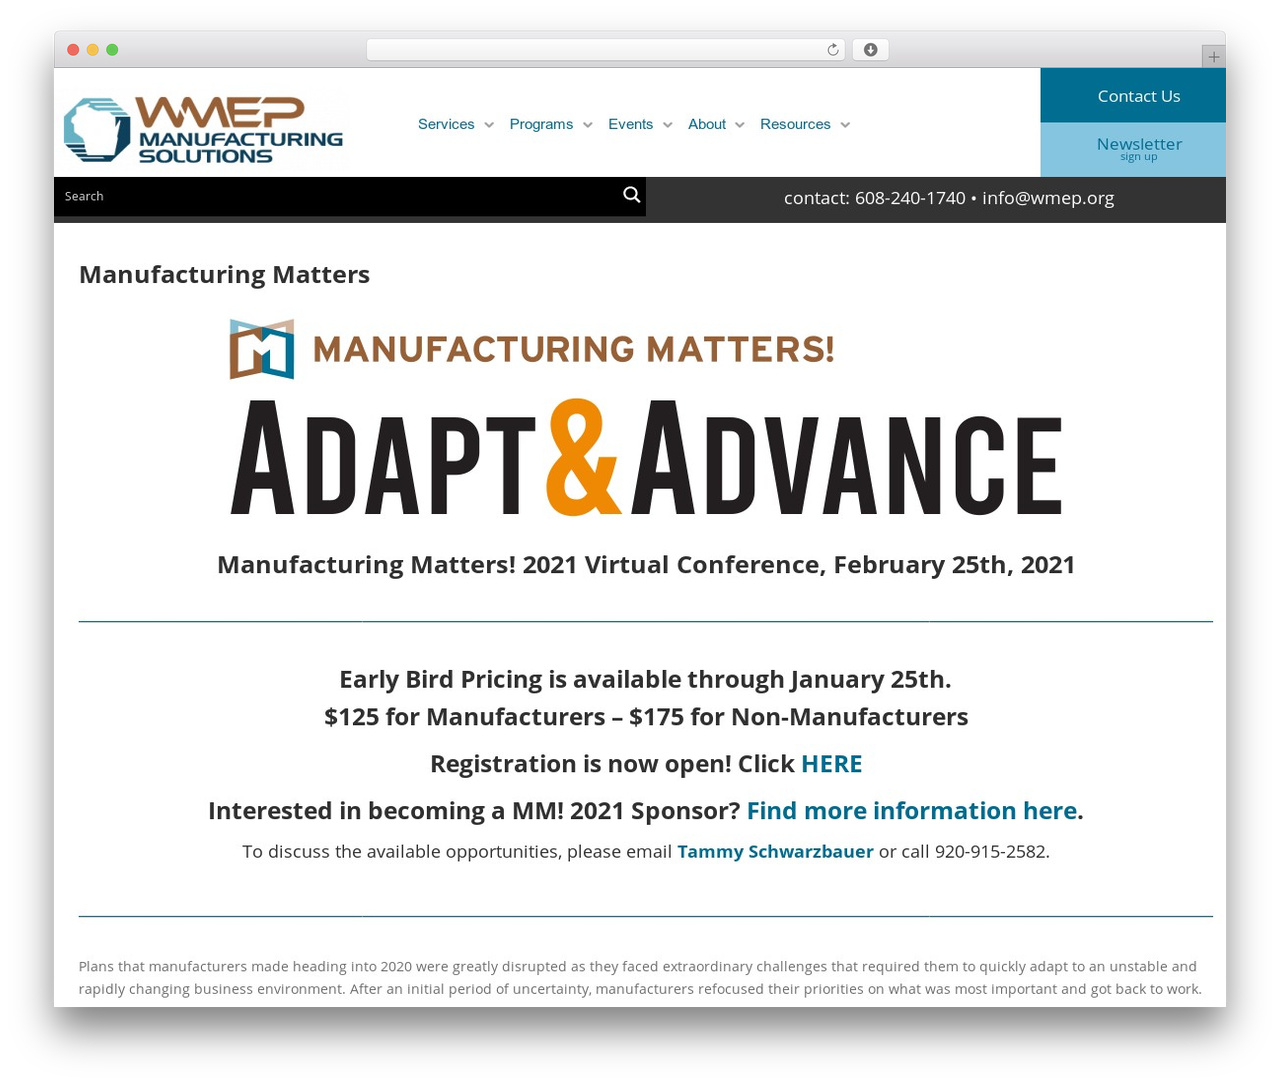 Template WordPress Gantry Theme for WordPress - wmep.org/events/manufacturing-matters-conference